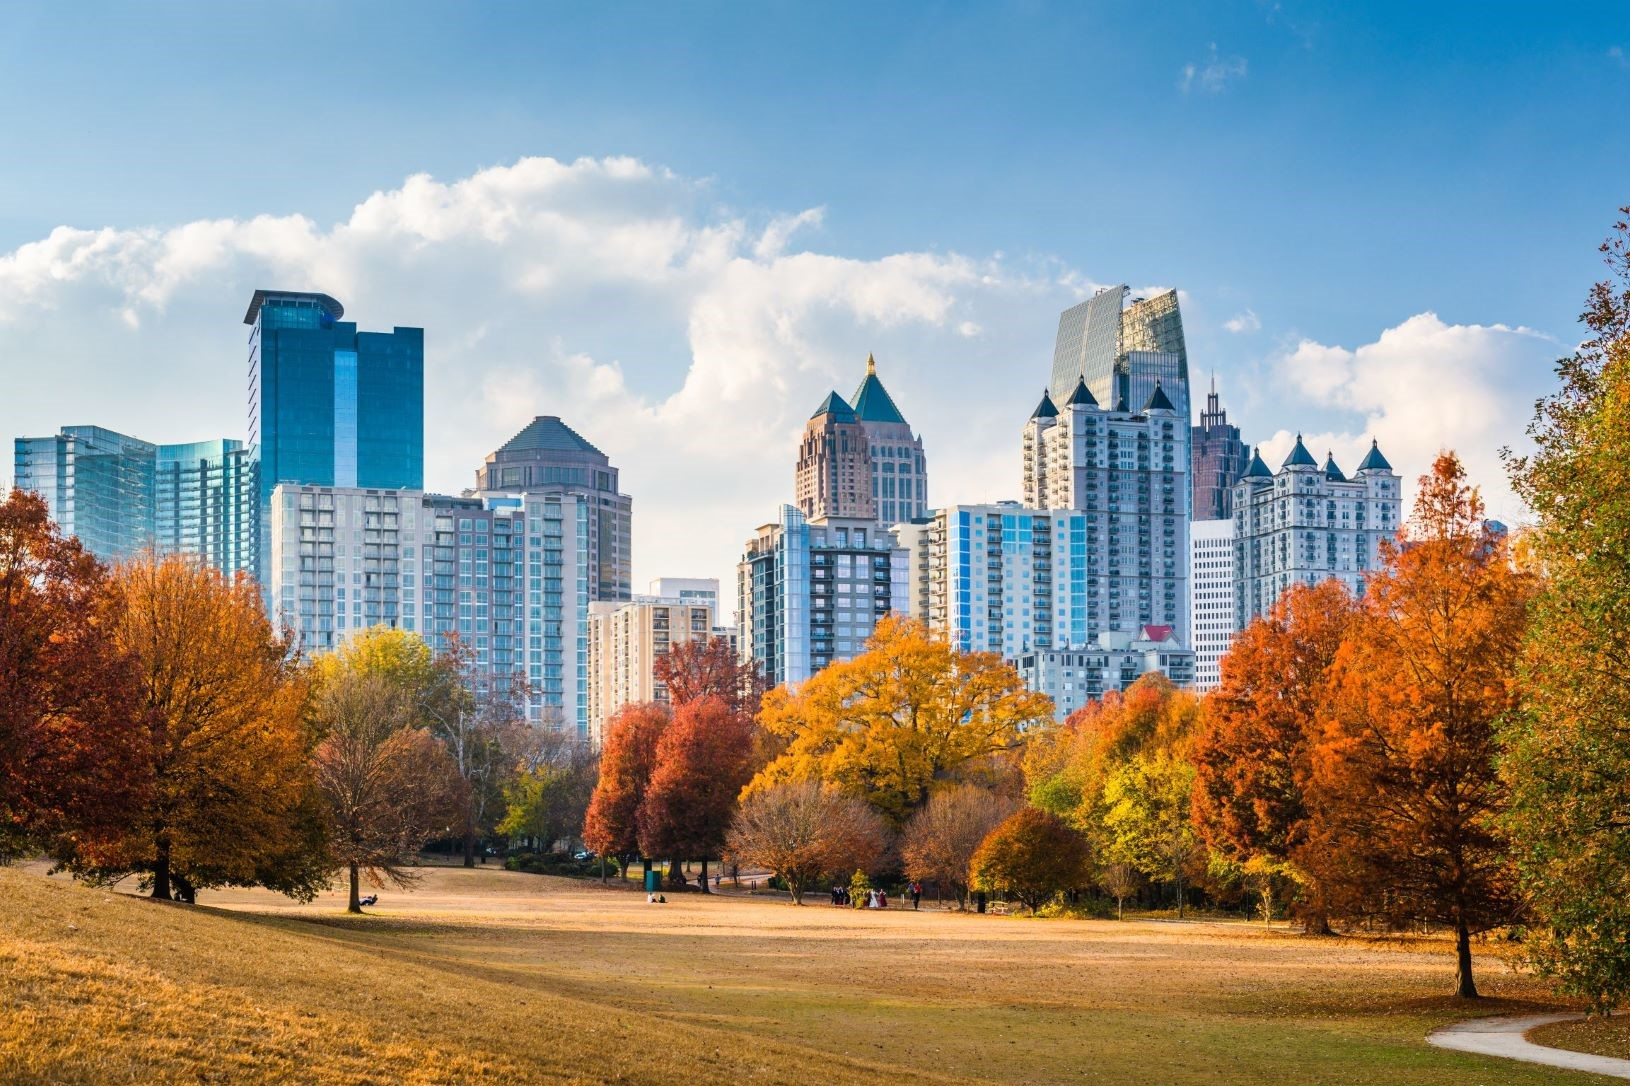 Photo of Piedmont Park and the Mid Town Skyline in Atlanta Georgia.